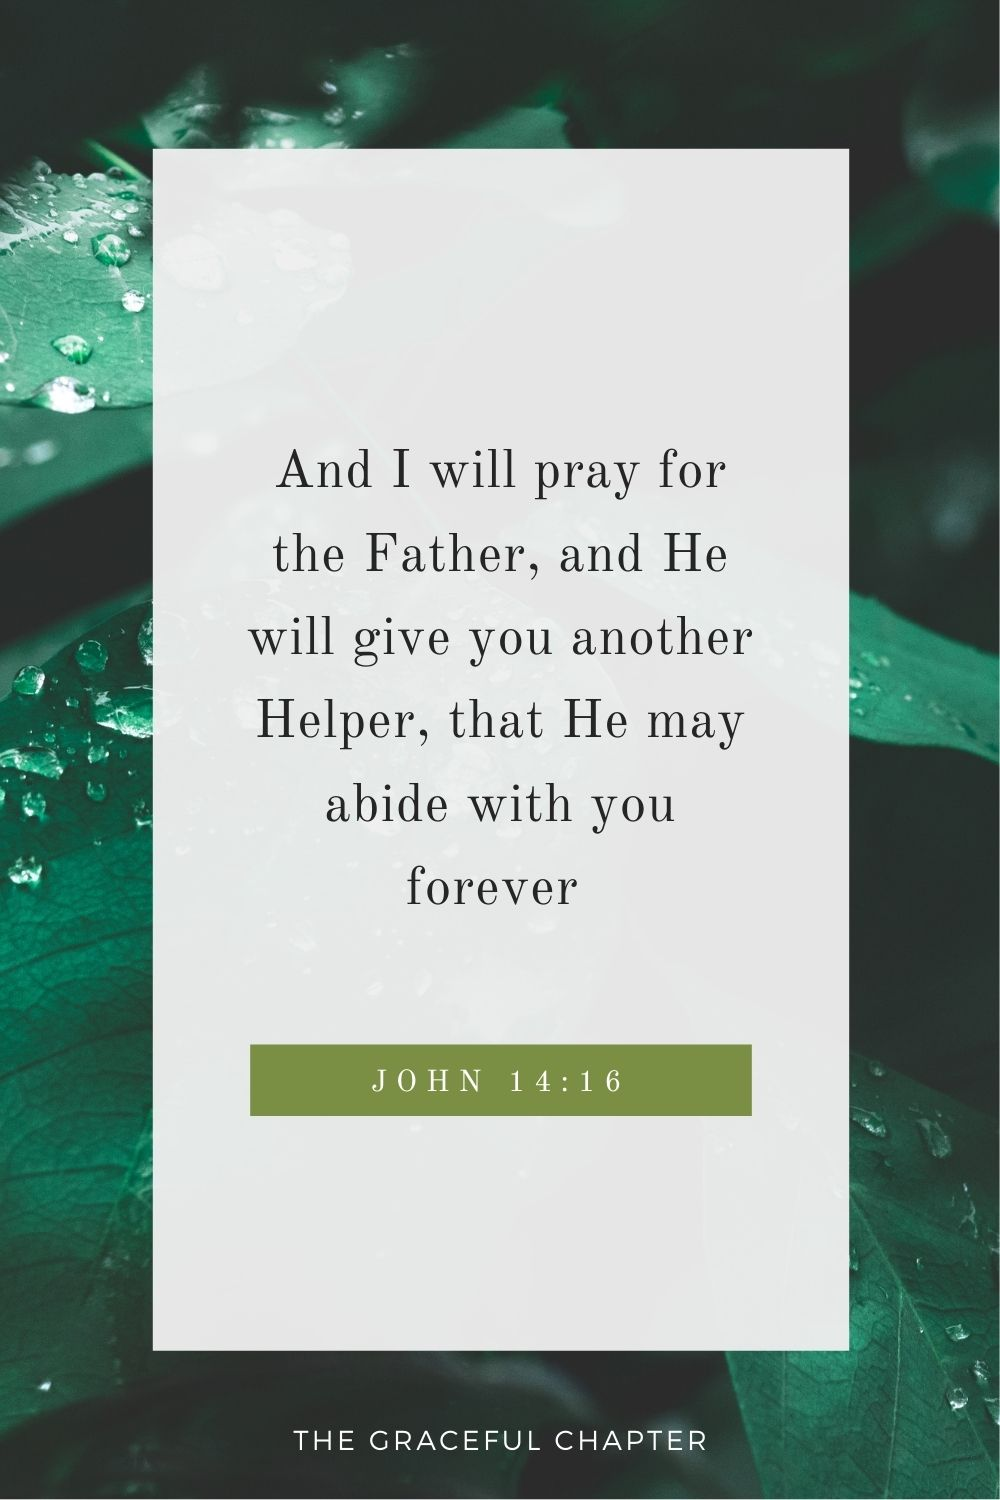 And I will pray for the Father, and He will give you another Helper, that He may abide with you forever  John 14:16